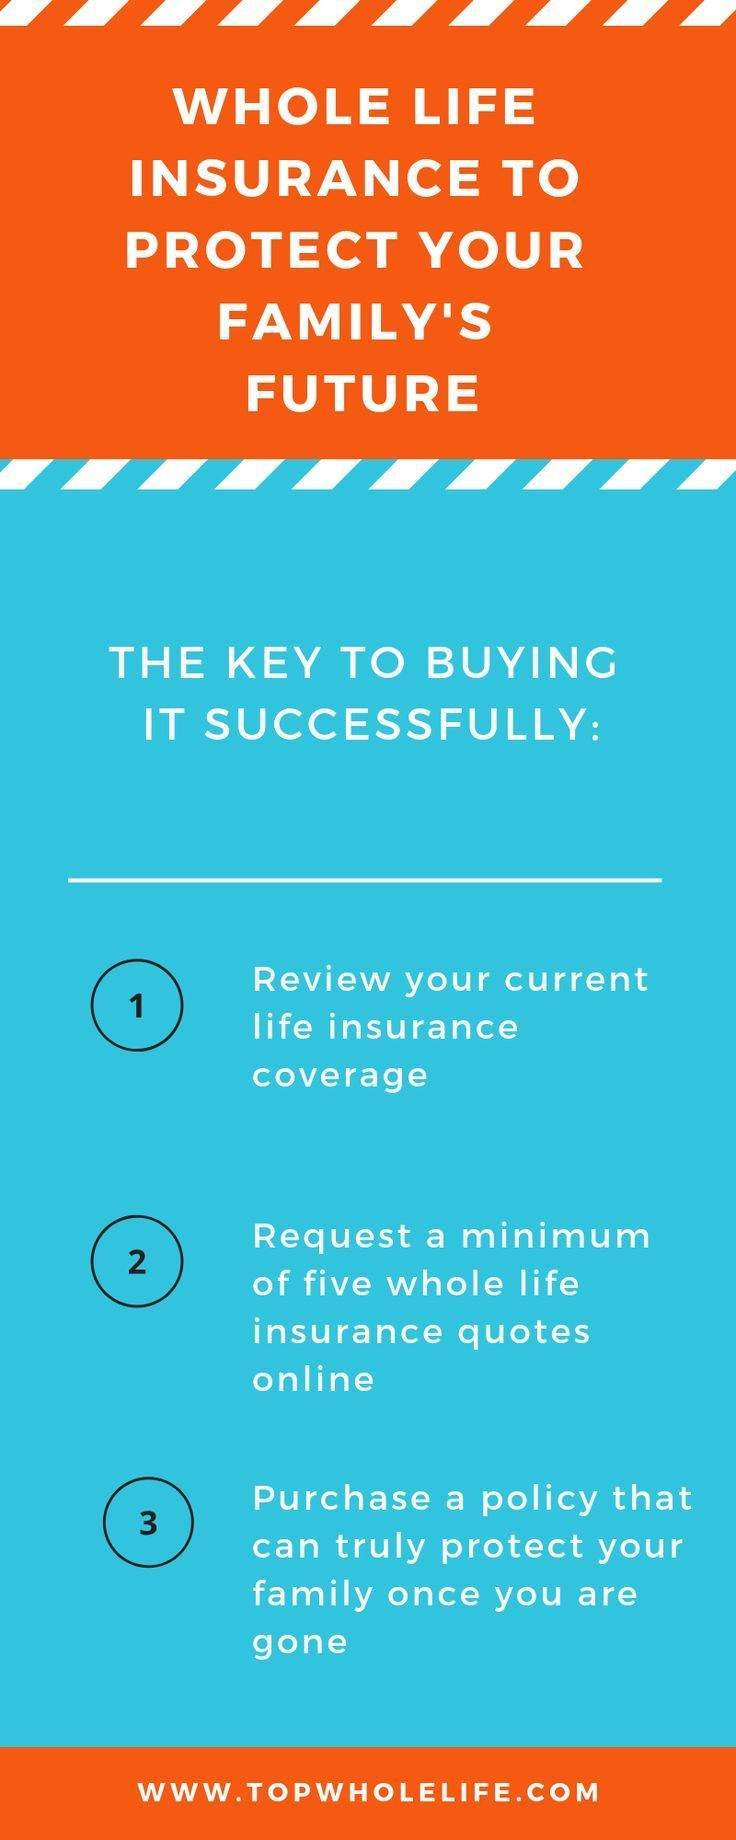 The key to buying whole life insurance successfully online ...